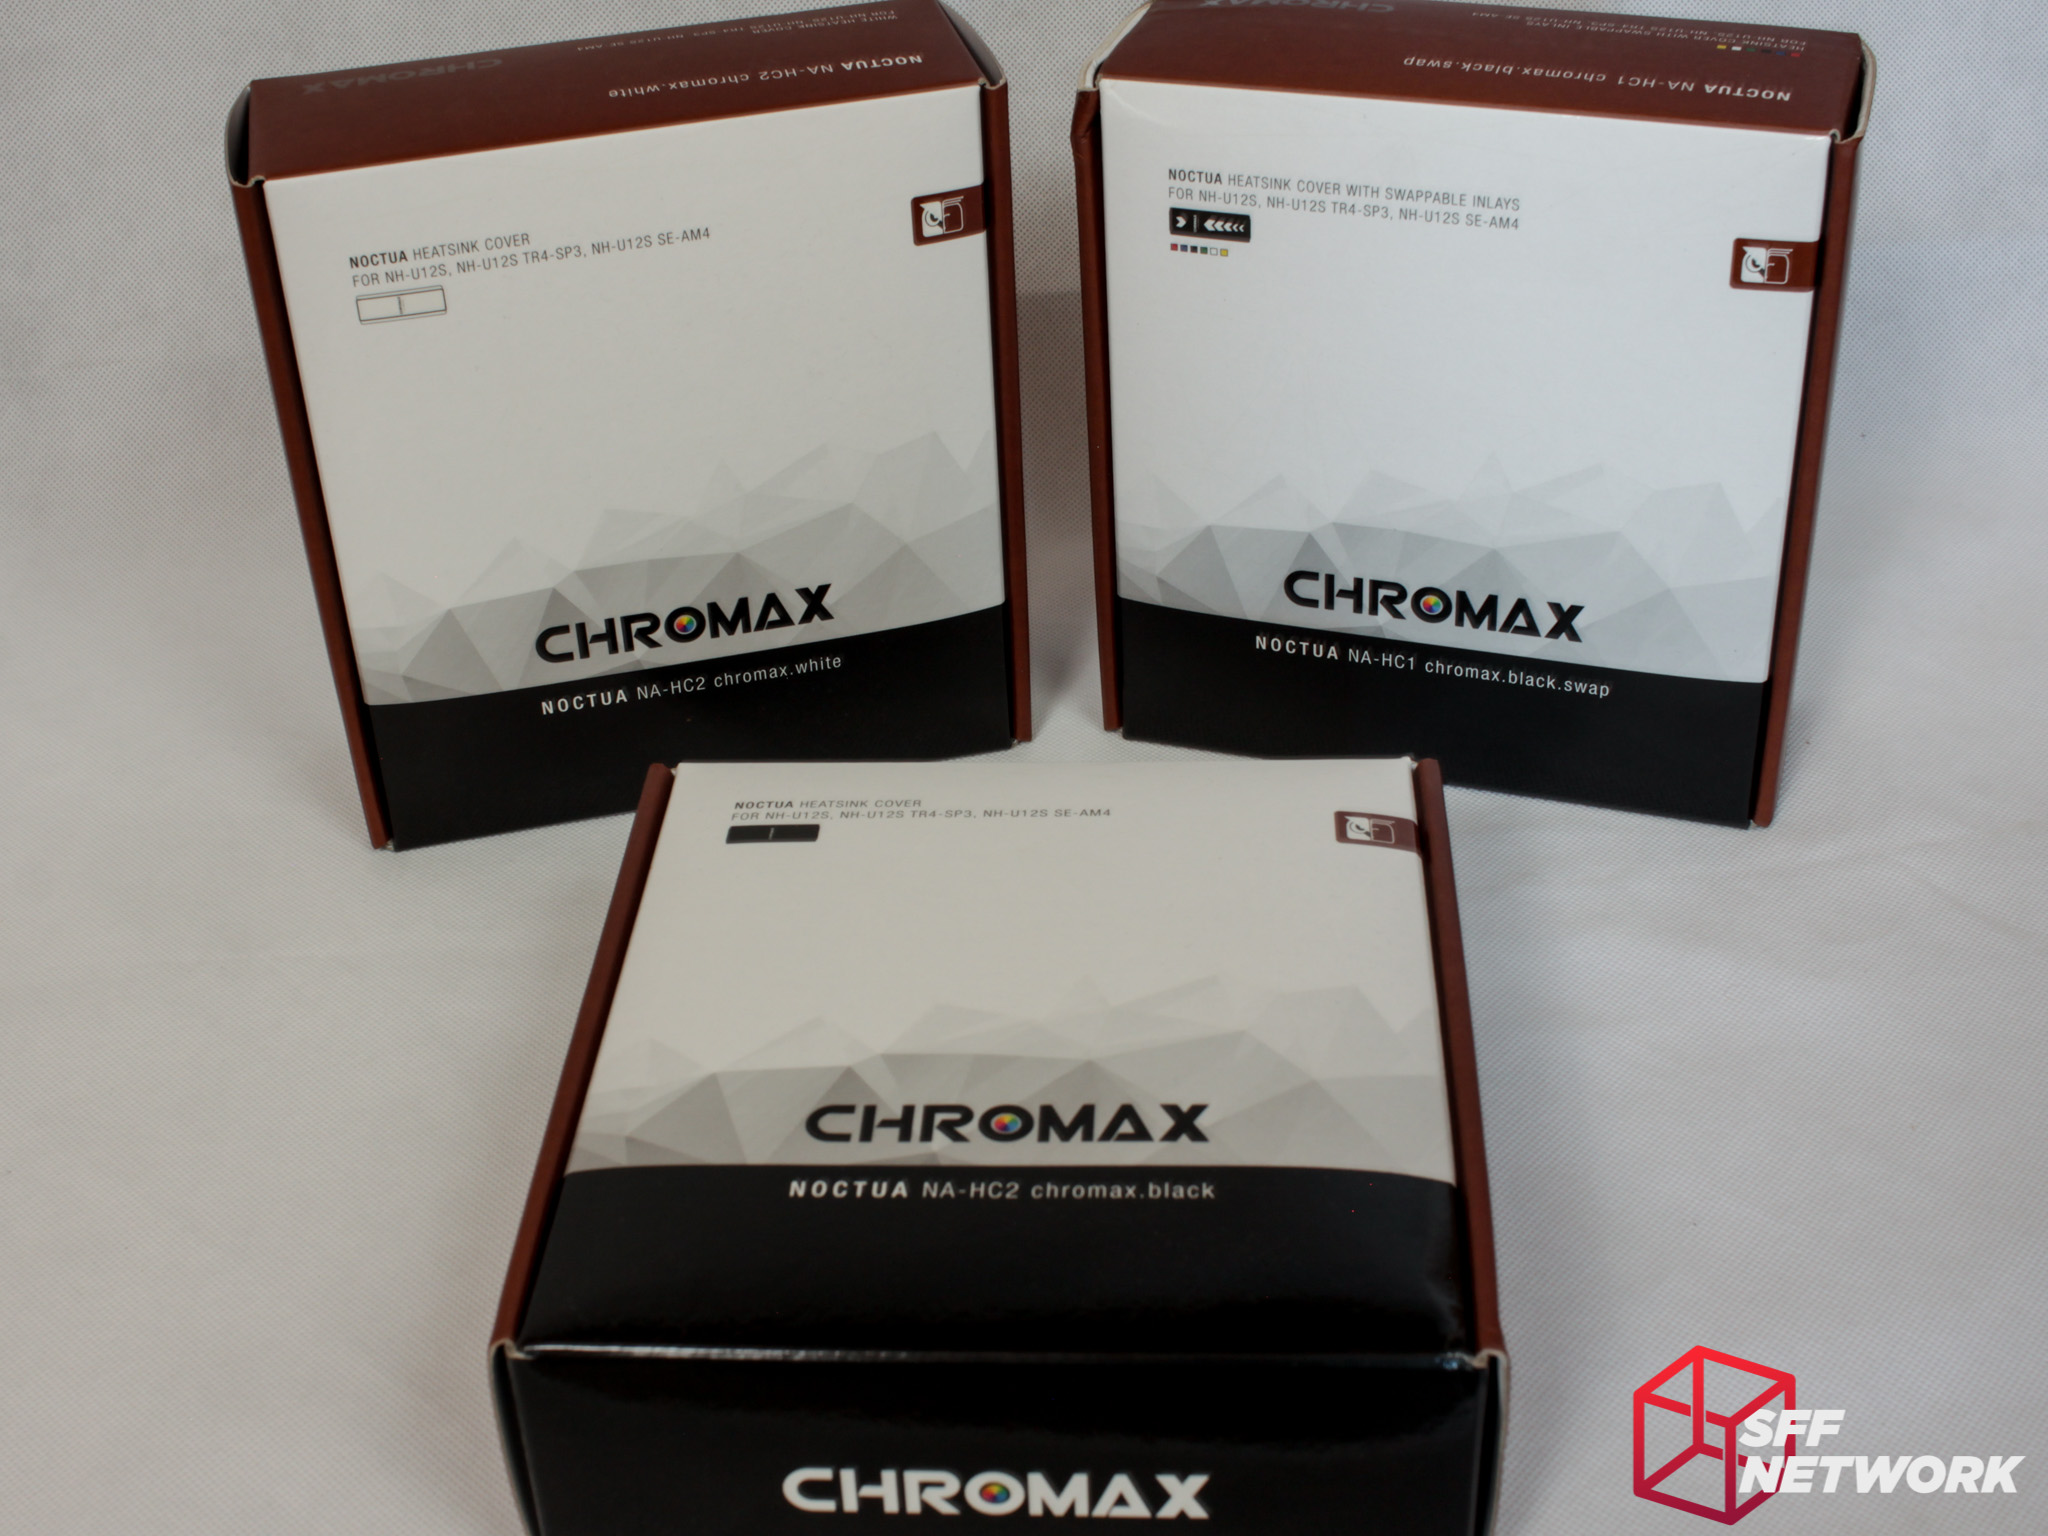 Noctua's Chromax - Custom Without RGB LEDs - Small Form Factor Network